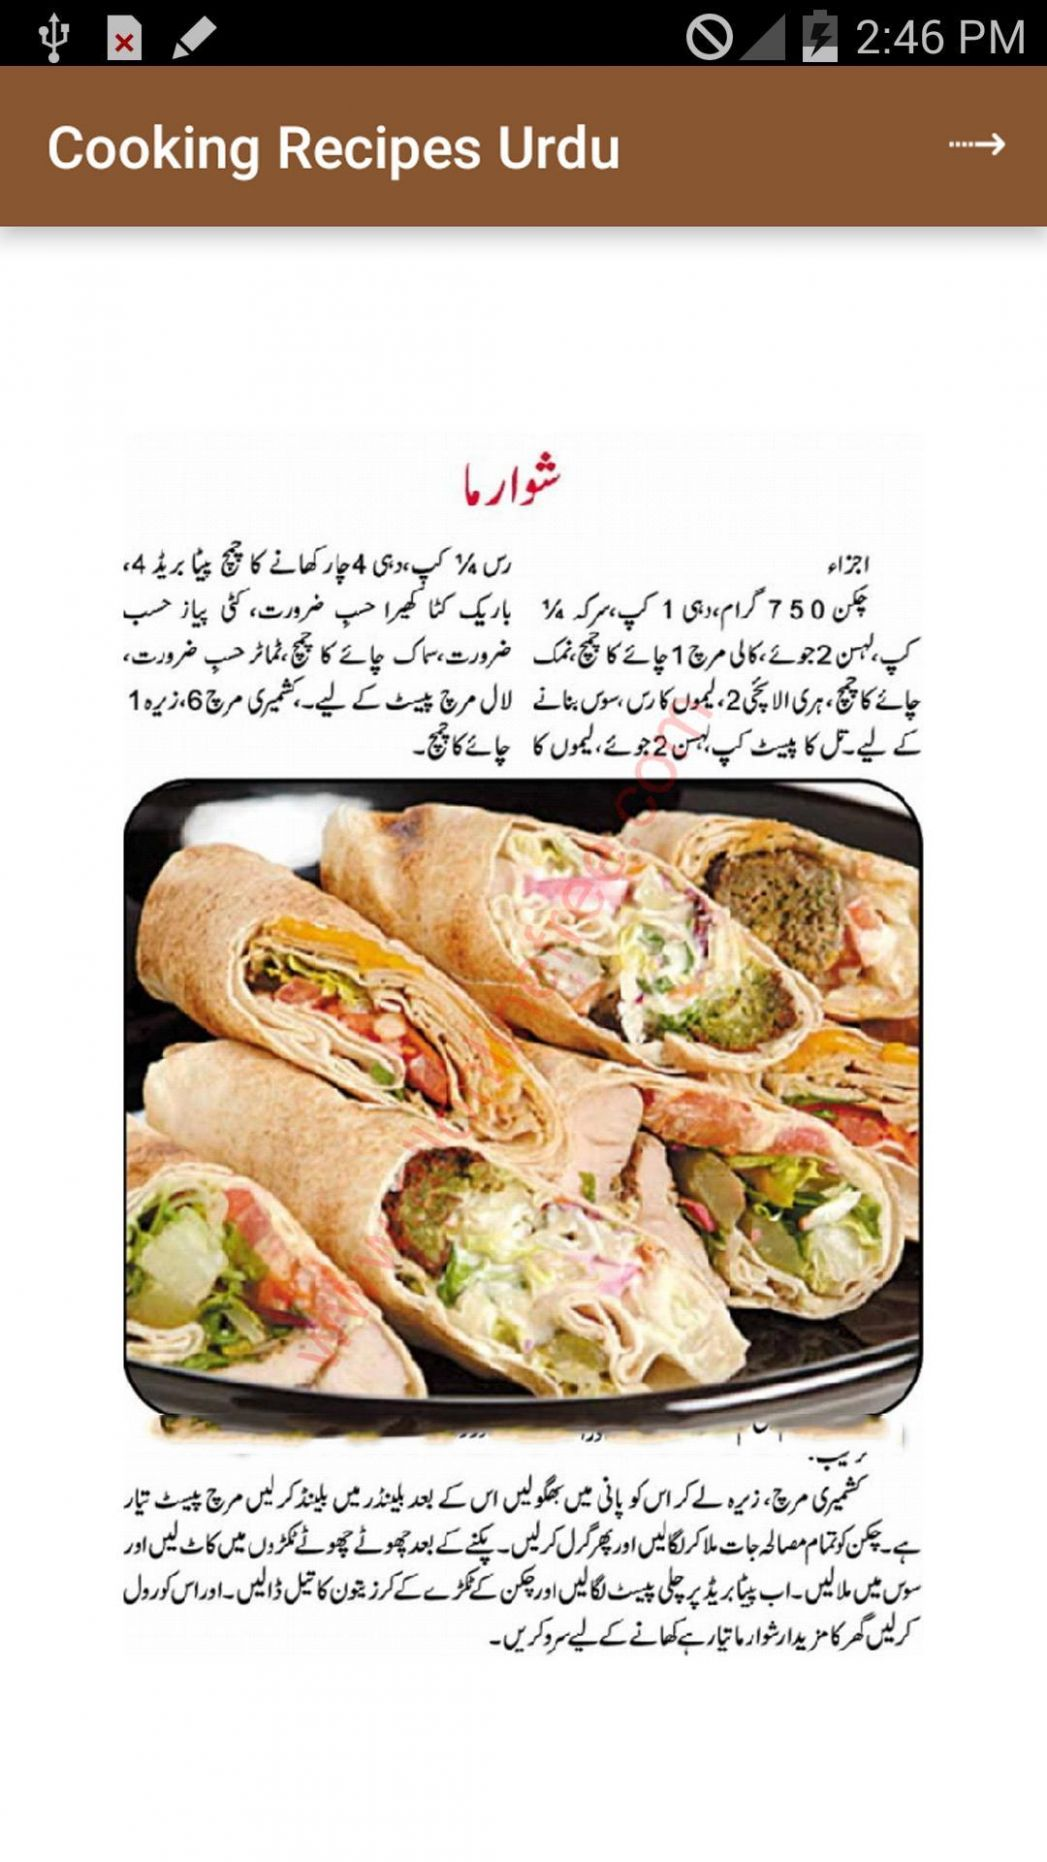 Cooking Recipes in Urdu for Android - APK Download - Recipes In Urdu